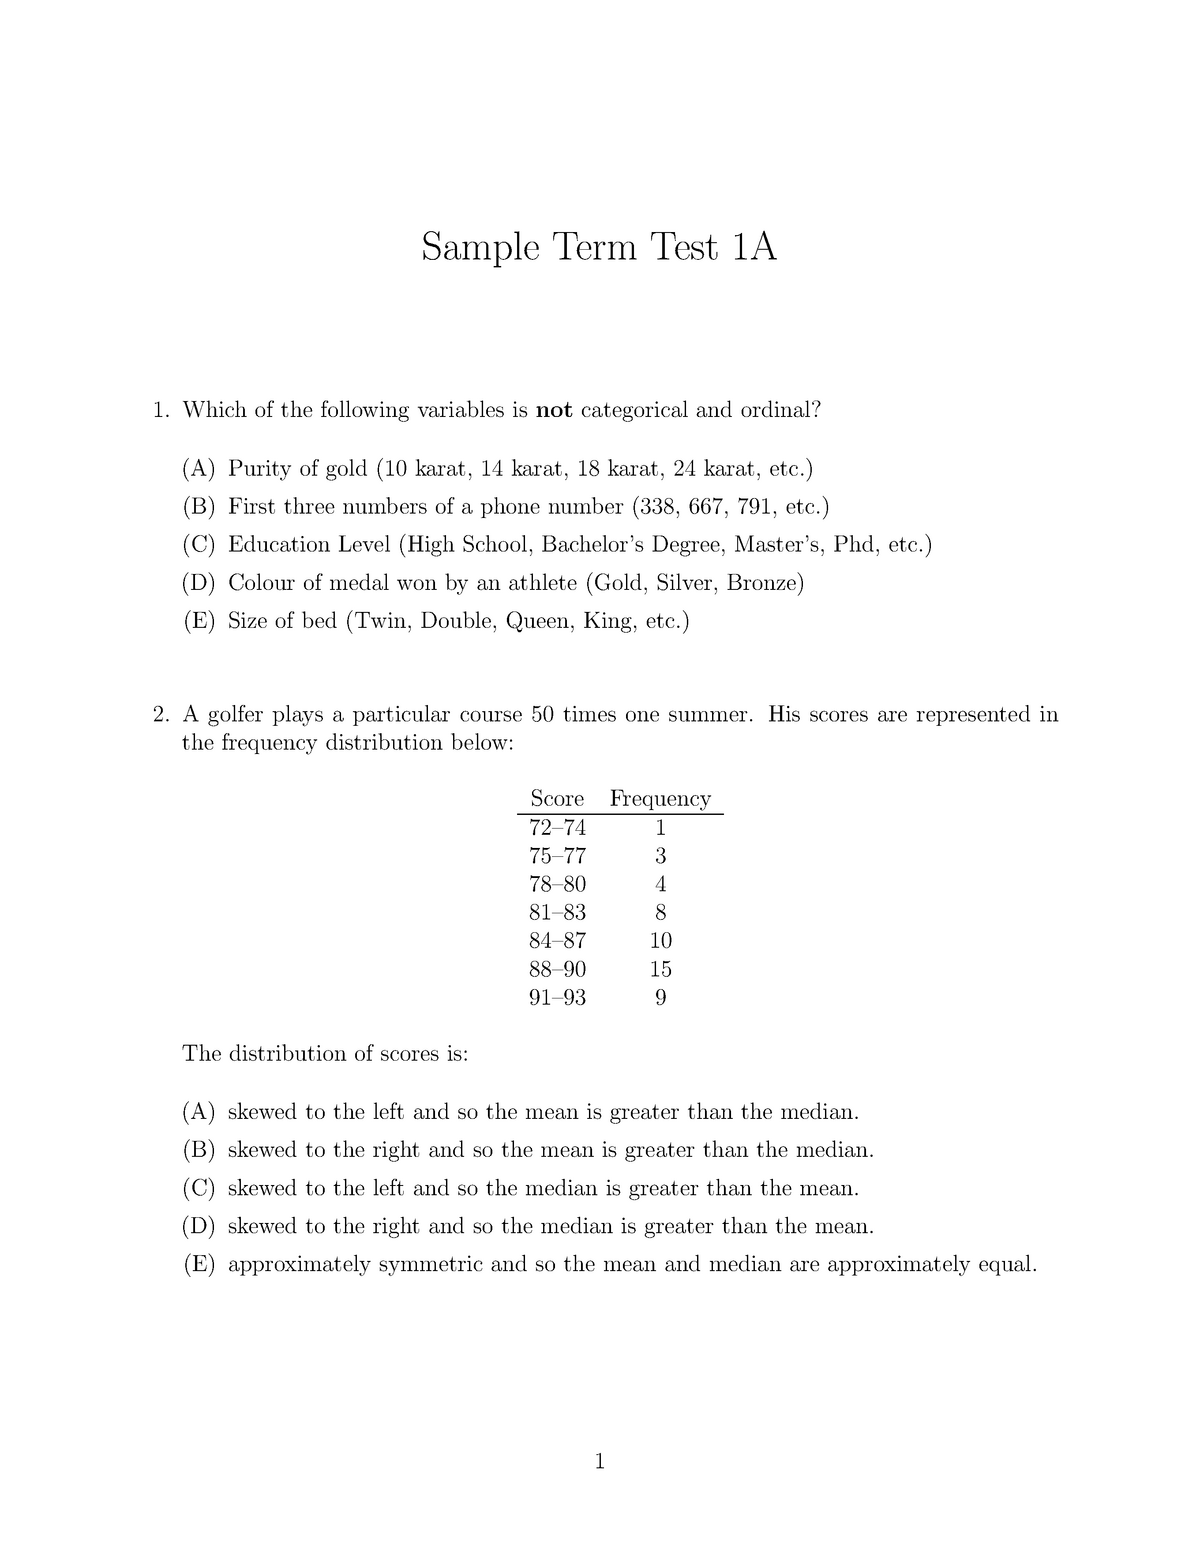 Sample/practice exam 17 October 2014, questions and answers